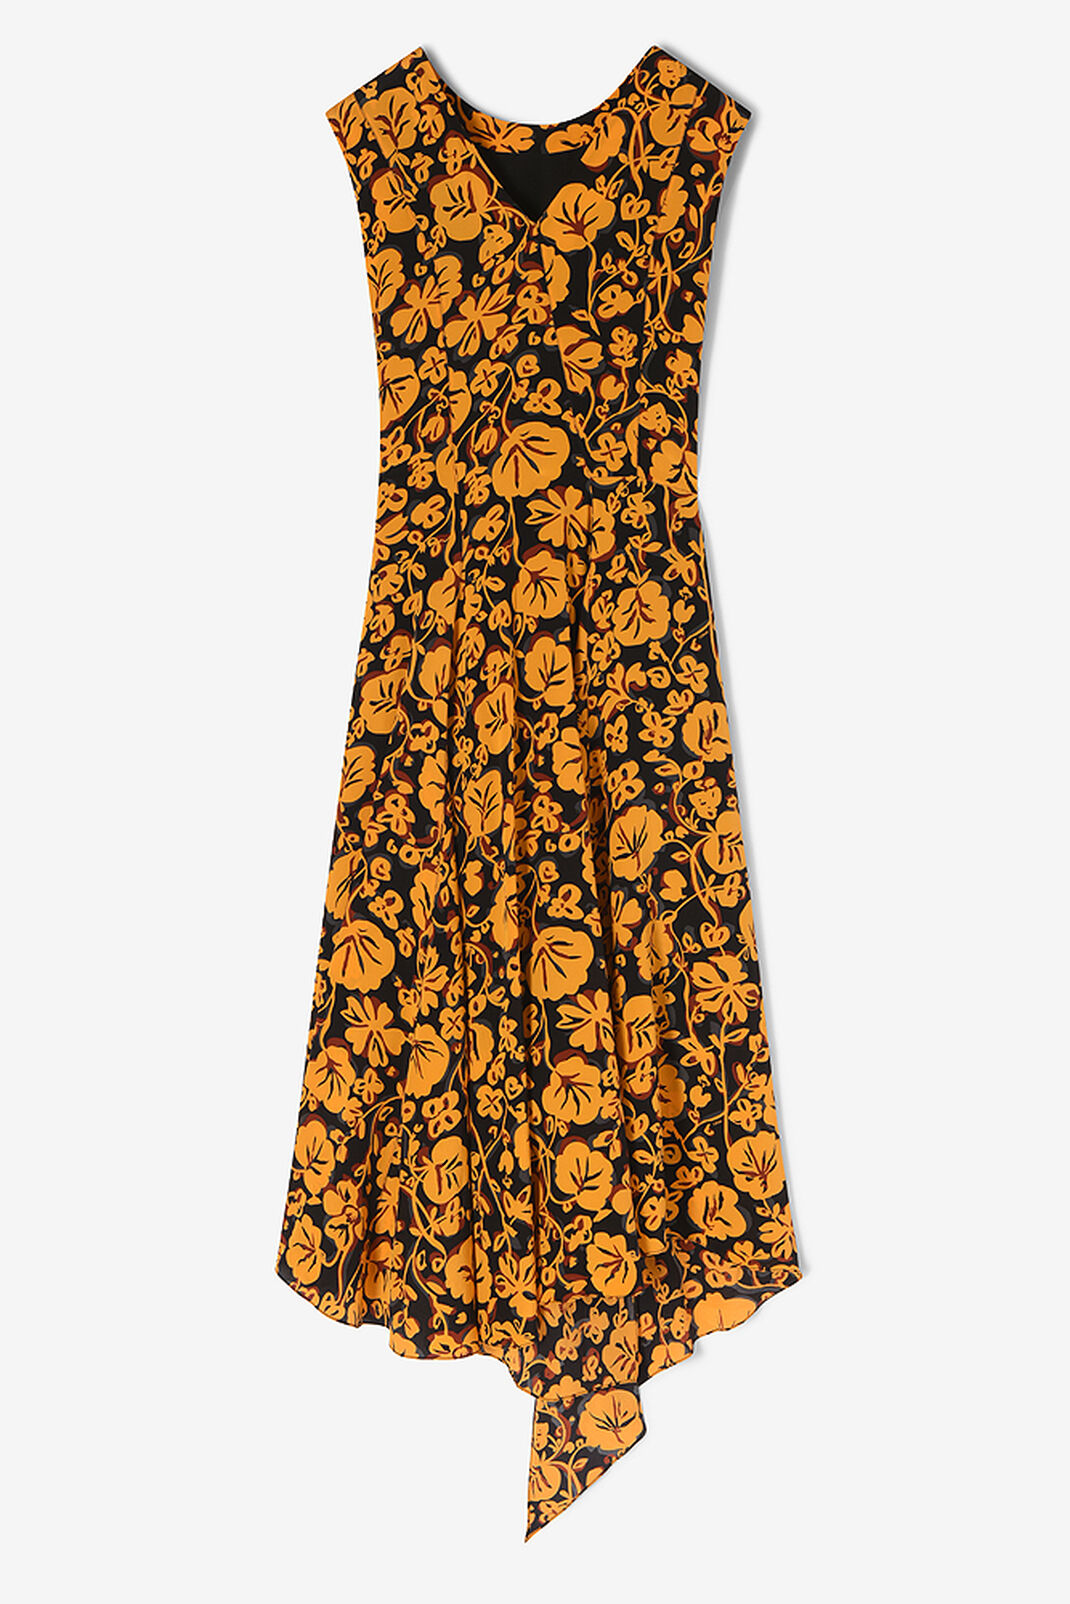 MARIGOLD 'Floral Leaf' Midi Dress for women KENZO